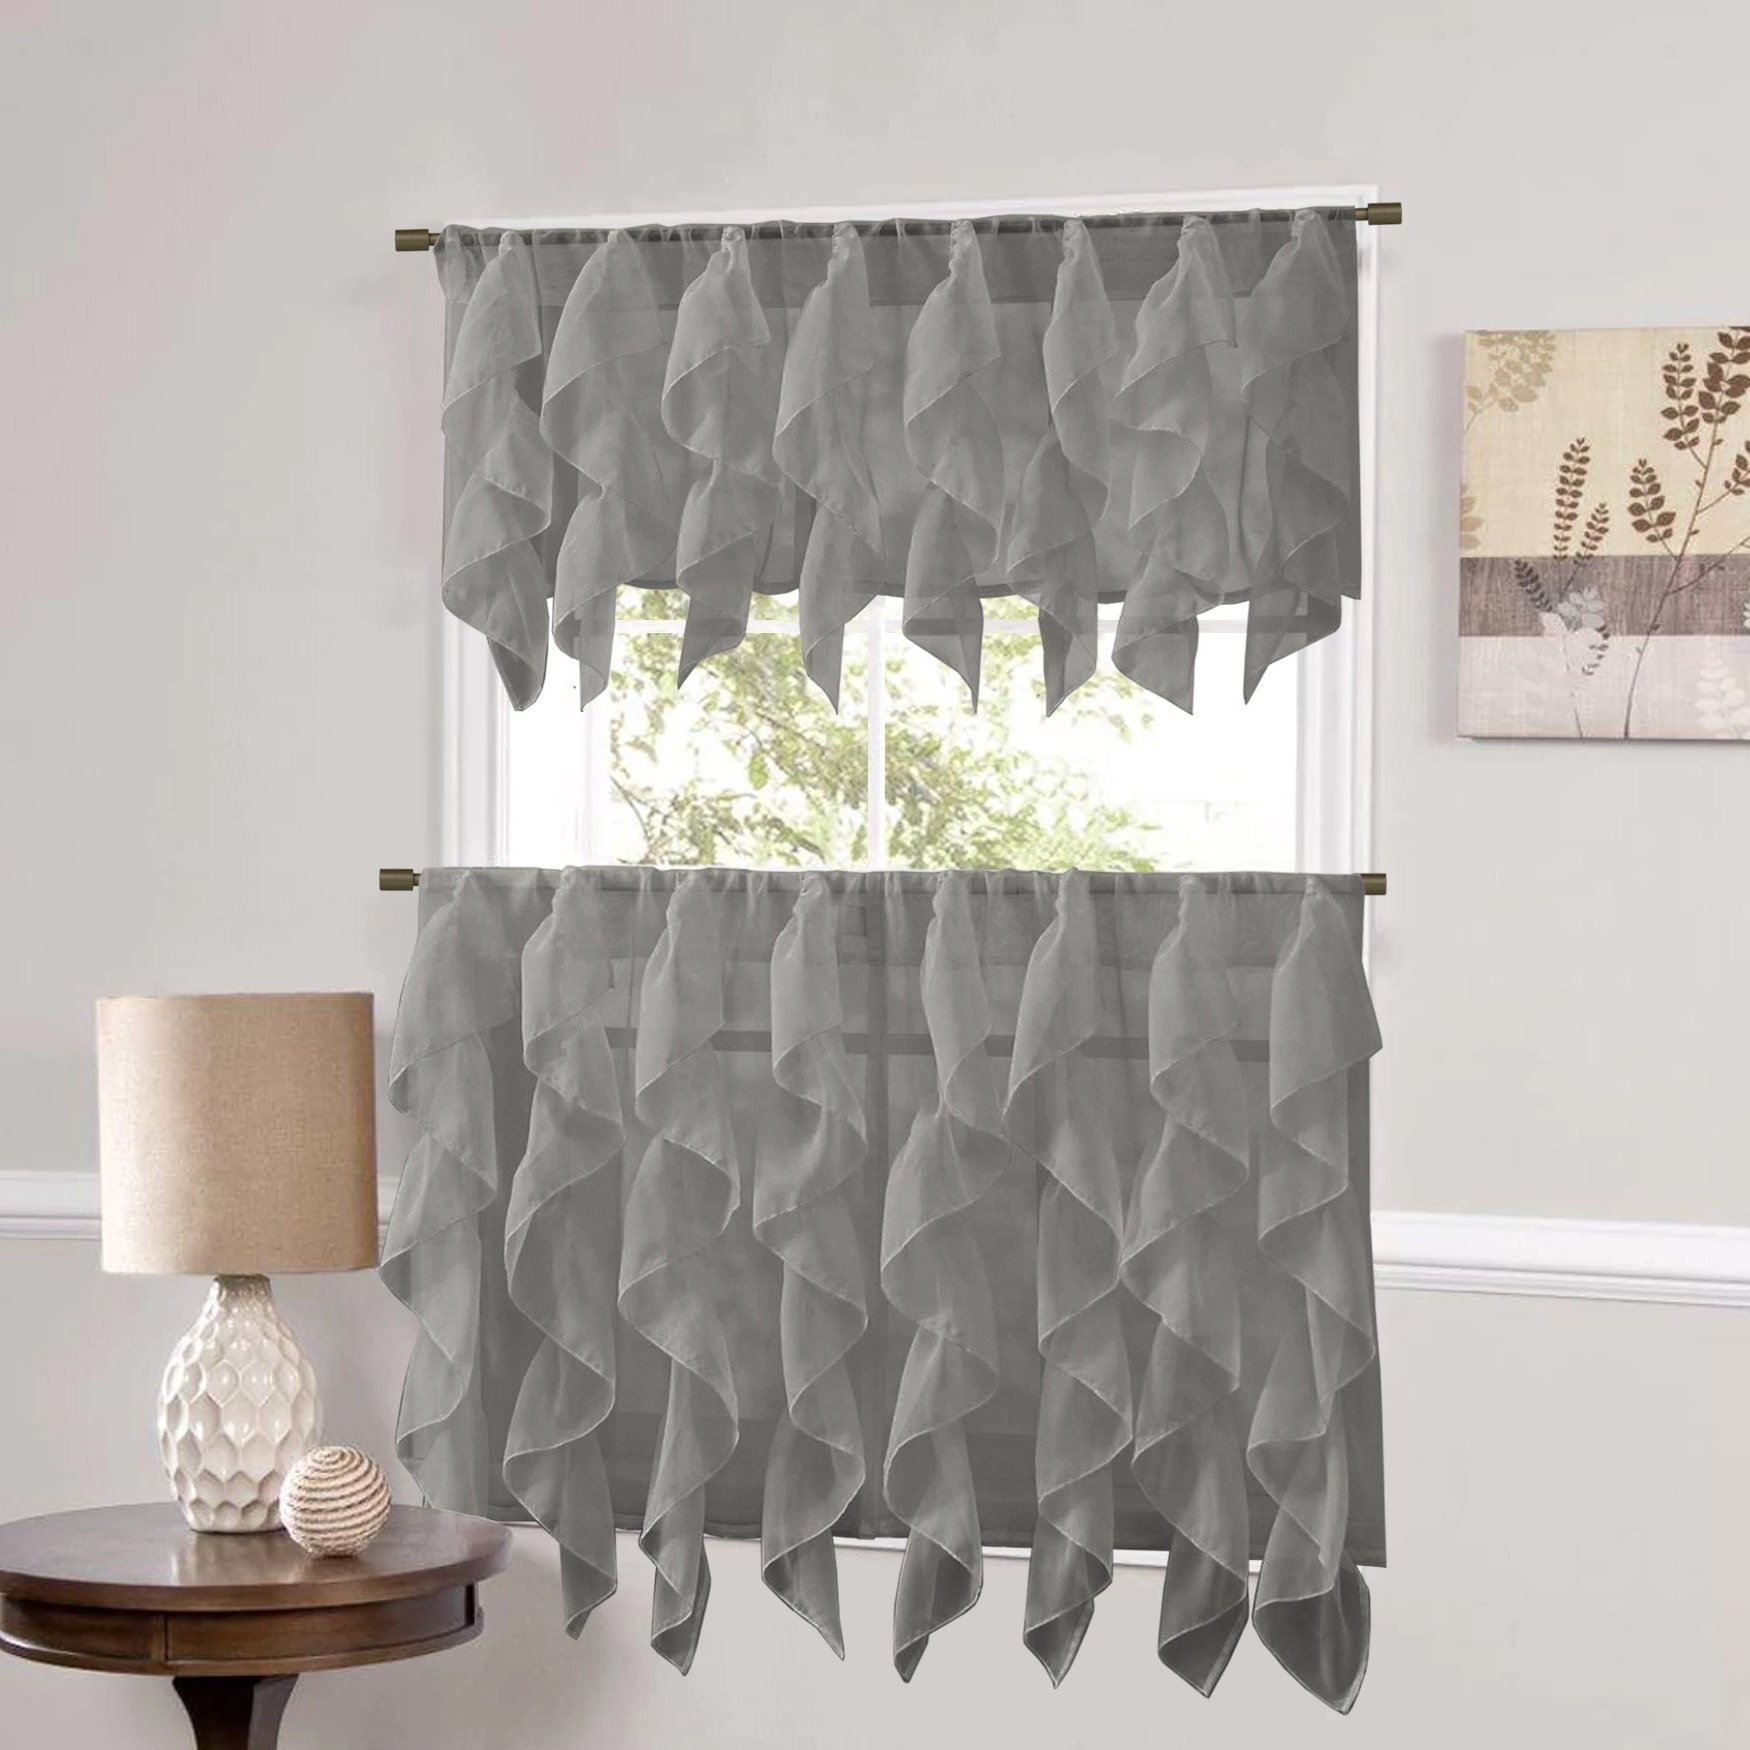 Trendy Sweet Home Collection Grey Vertical Ruffled Waterfall Valance And Curtain Tiers With Silver Vertical Ruffled Waterfall Valance And Curtain Tiers (View 6 of 20)